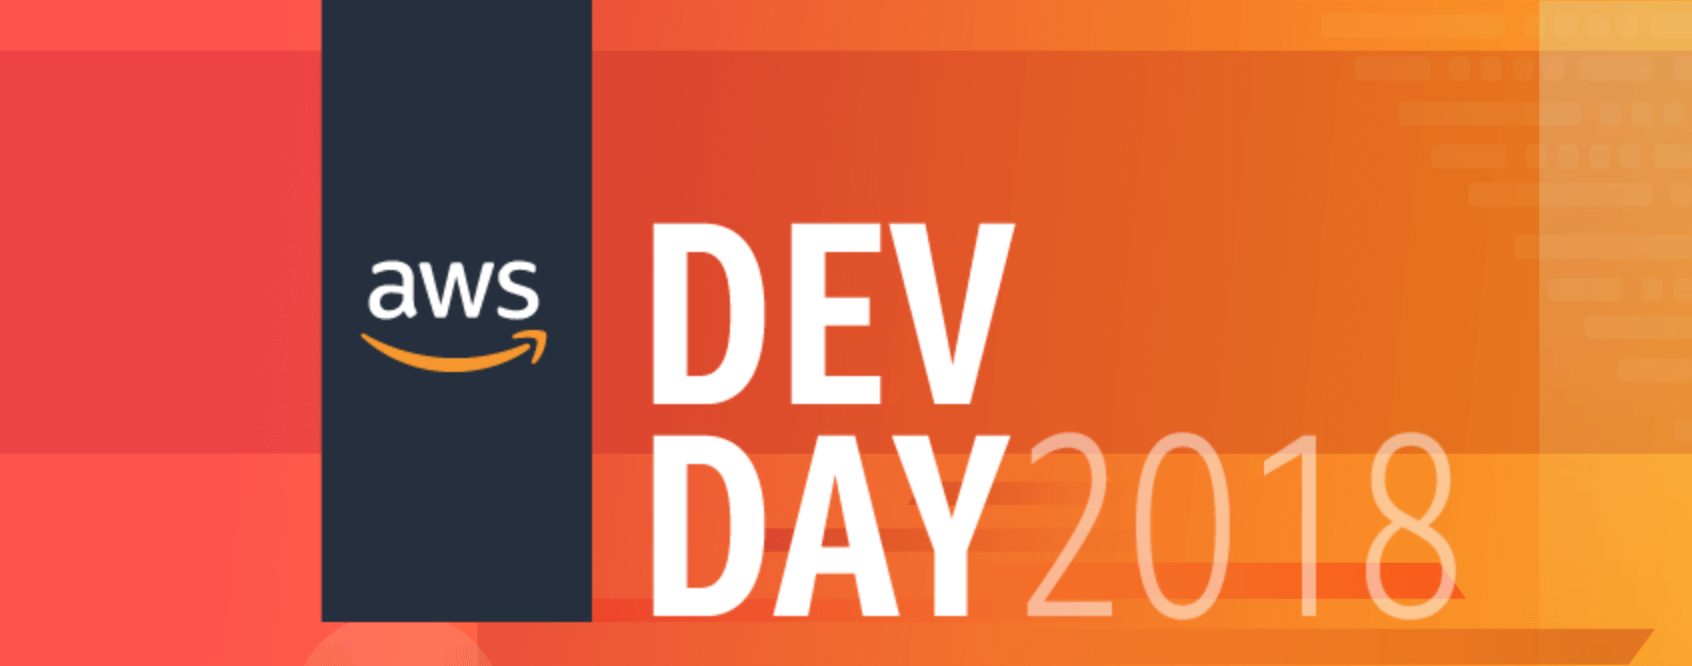 2018.10.29 AWS Dev Day 2018